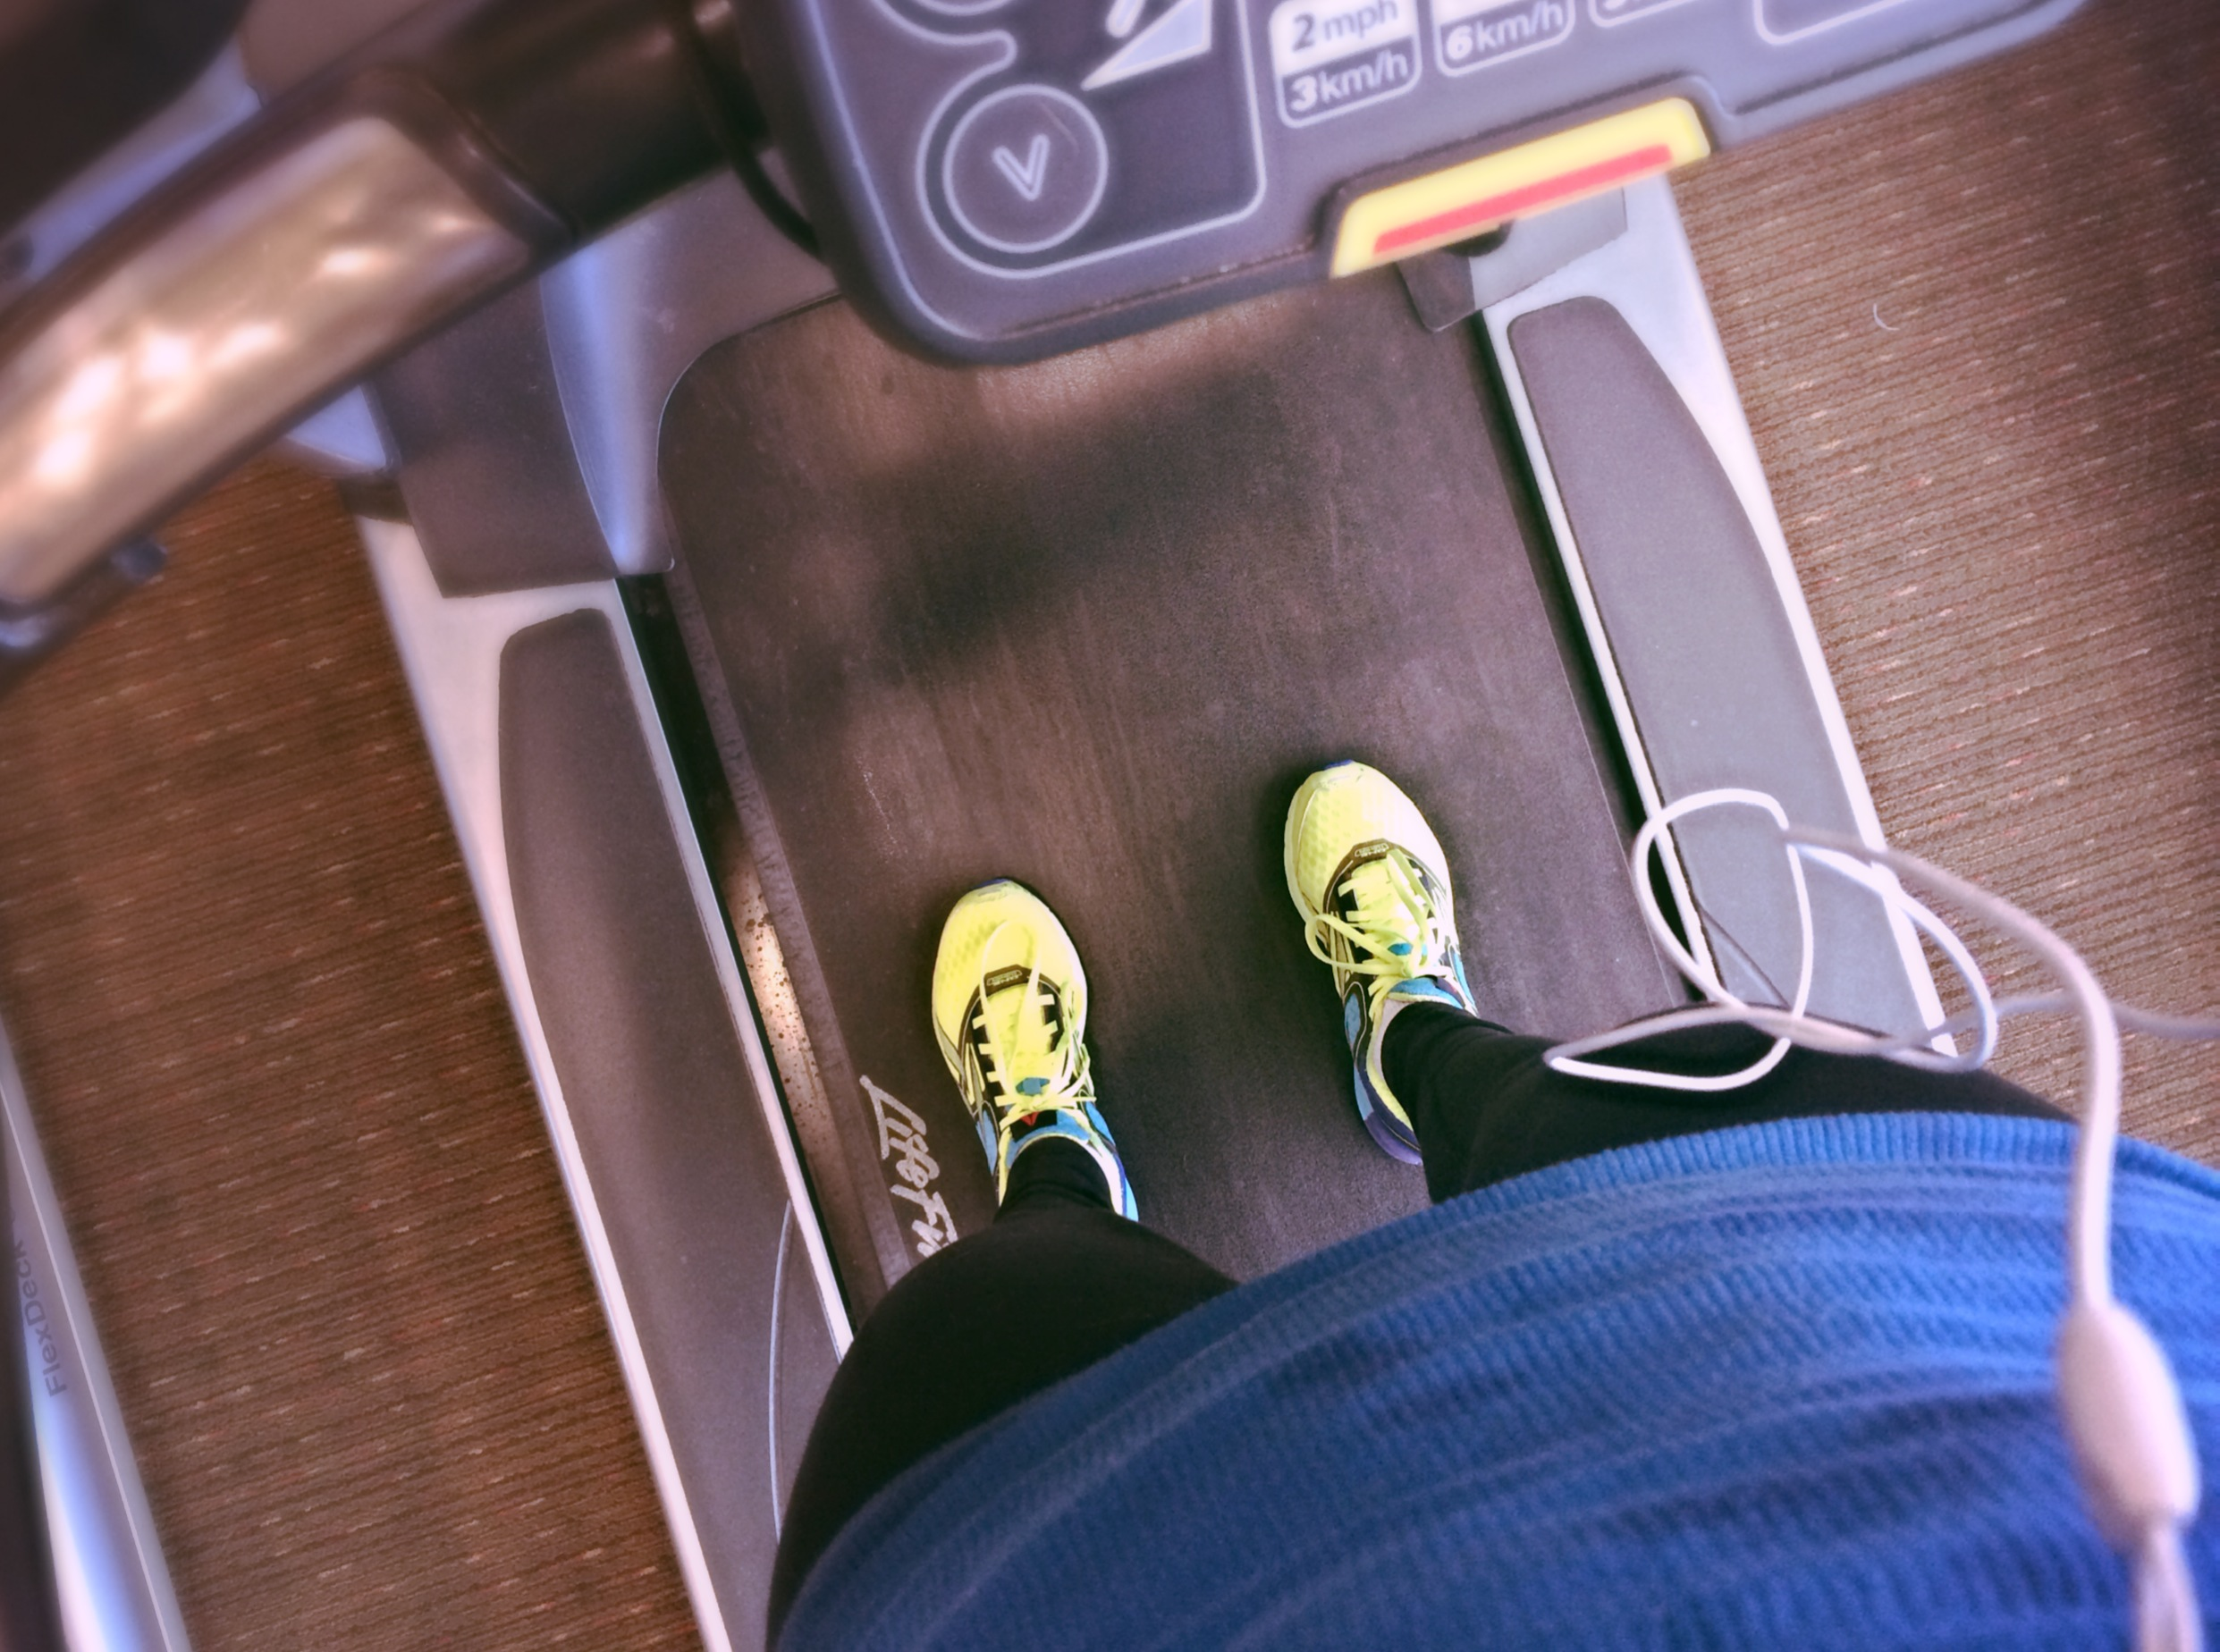 HIIT treadmill workout sneakers